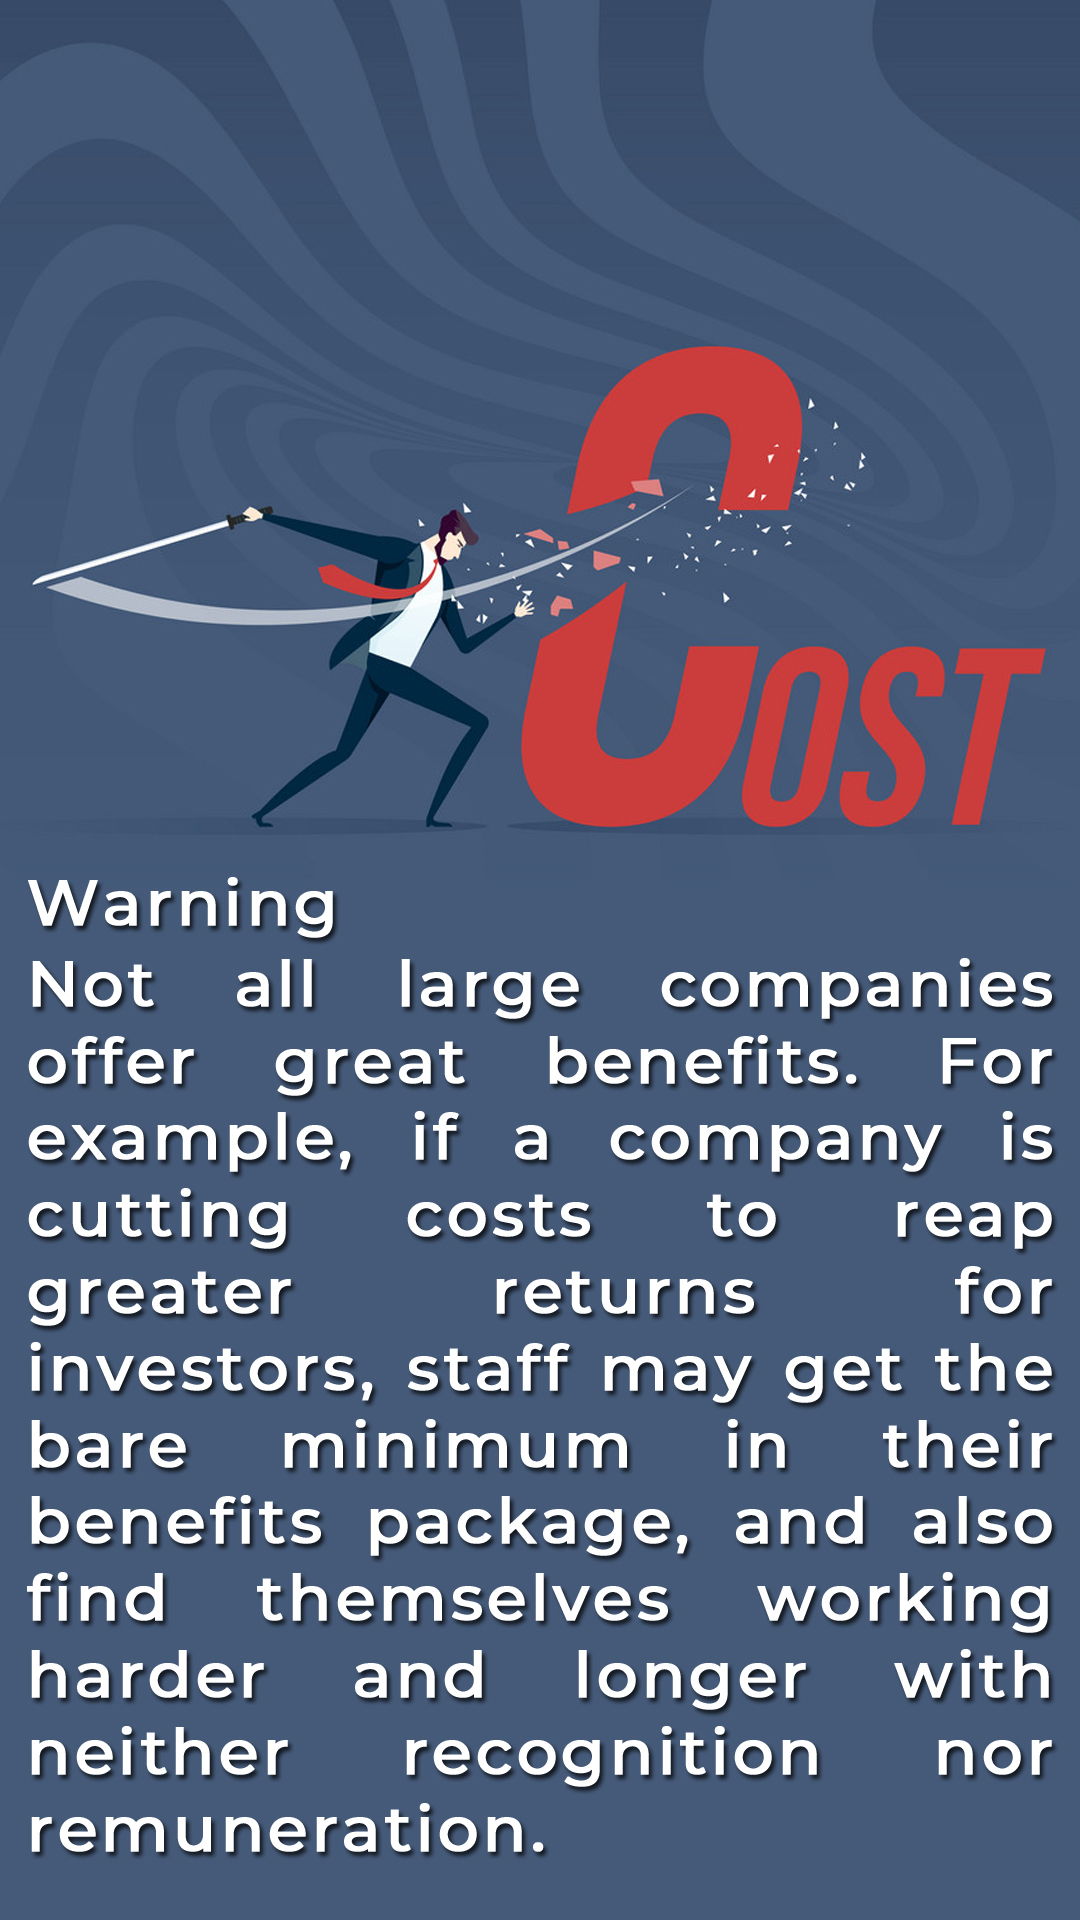 NOT ALL LARGE COMPANIES OFFER GREAT BENEFITS